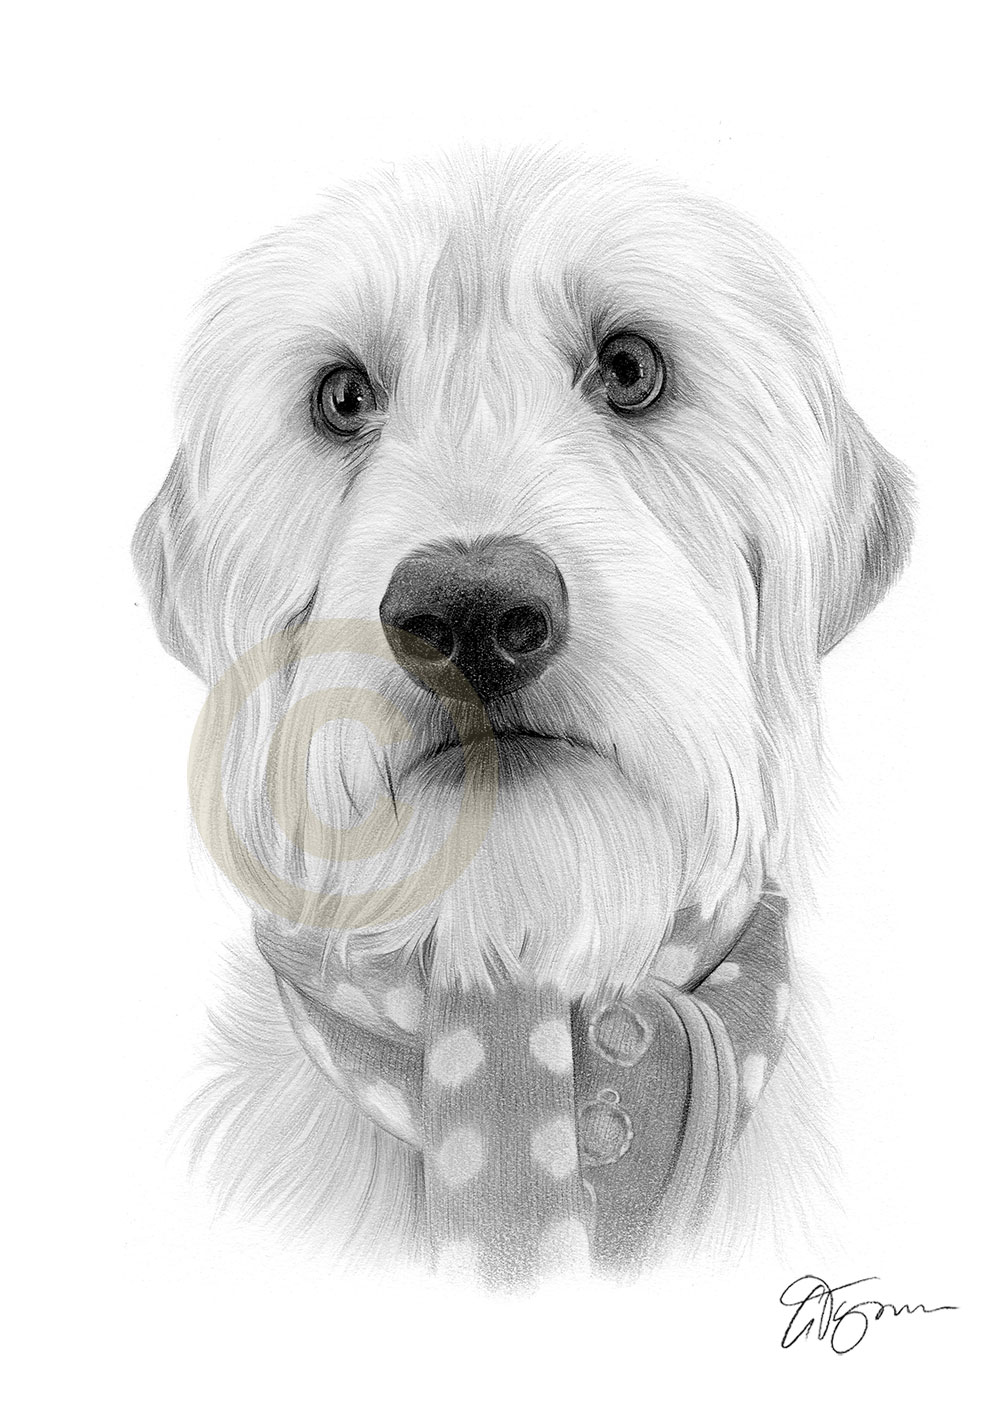 Pet portrait commission of a dog called Sandie by artist Gary Tymon